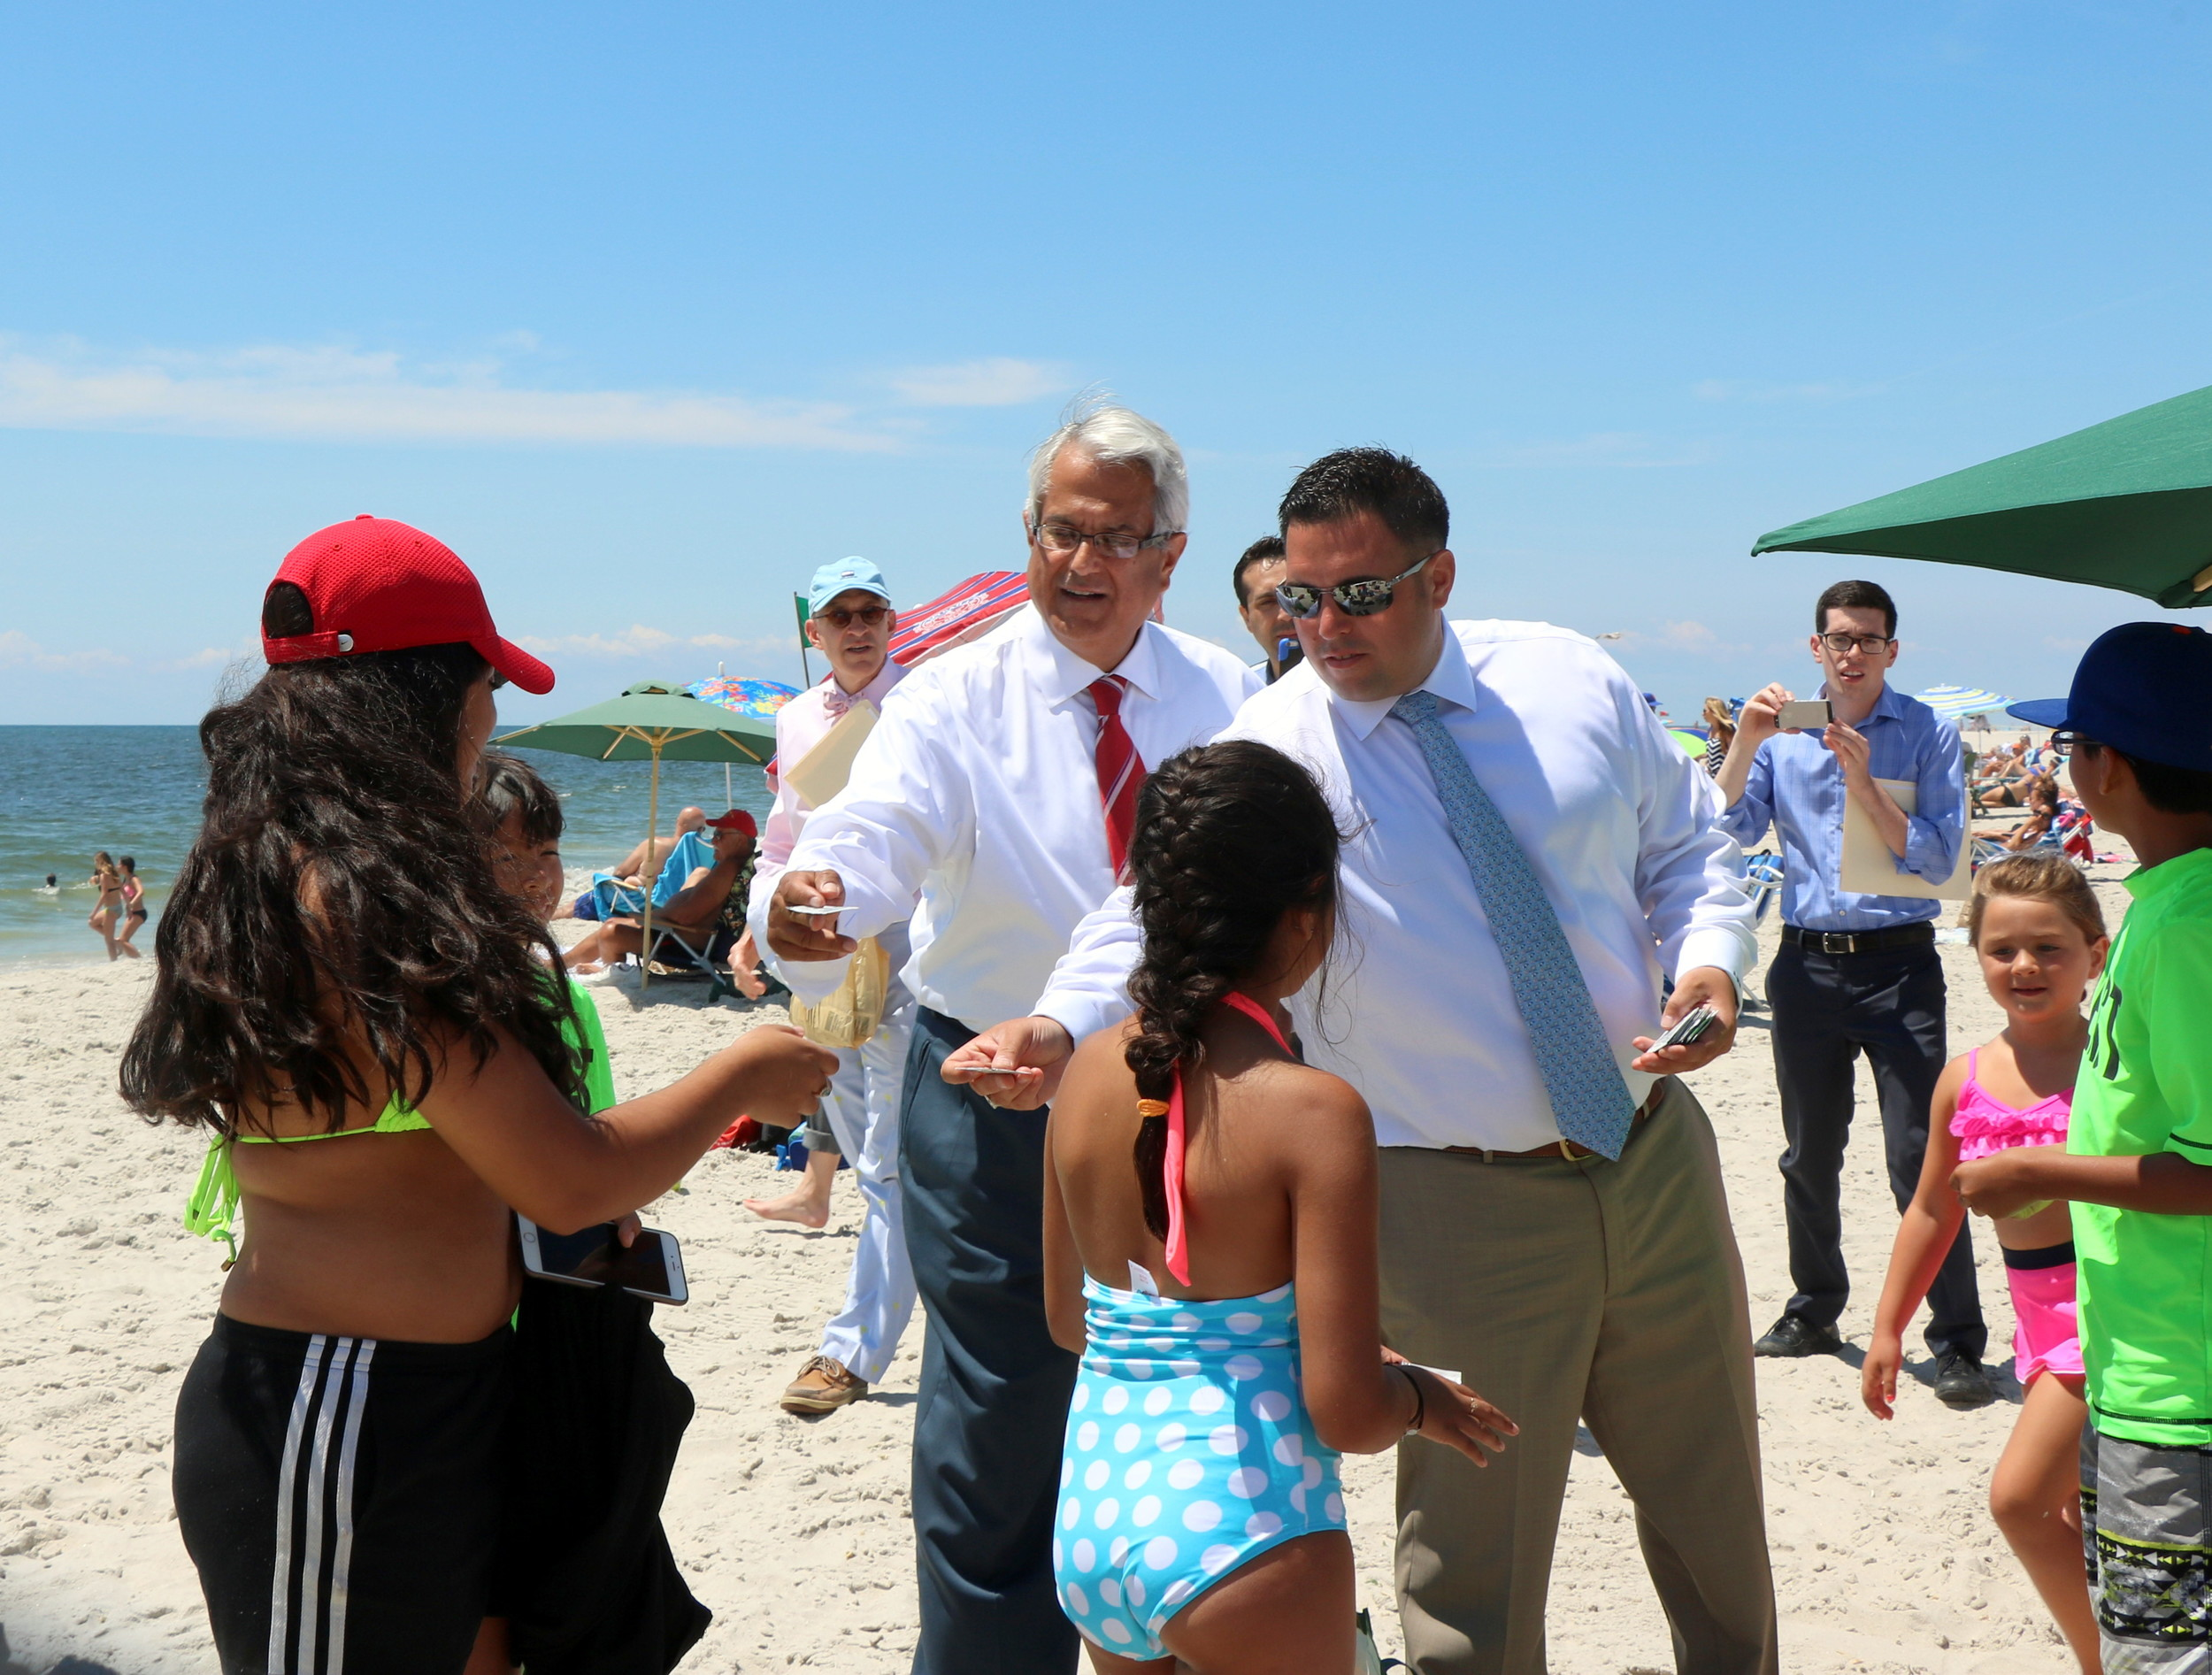 Town Supervisor Anthony Santino and Town Councilman Anthony D'Esposito hand out sunscreen packets to Point Lookout beachgoers on July 12.